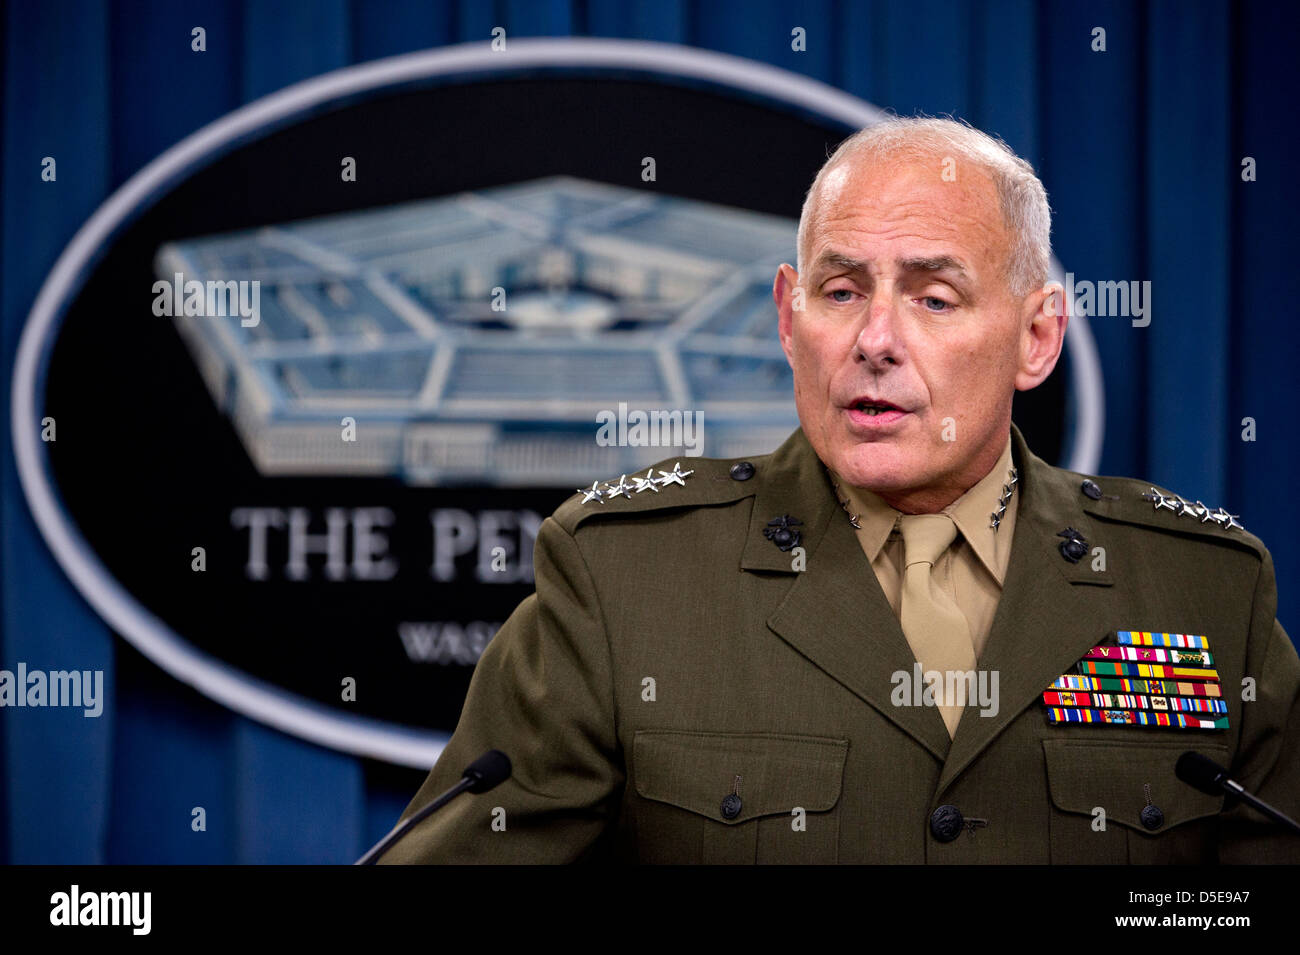 USMC General John Kelly, Commander US Southern Command briefs the media in the Pentagon on March 20, 2013 in Arlington, - Stock Image